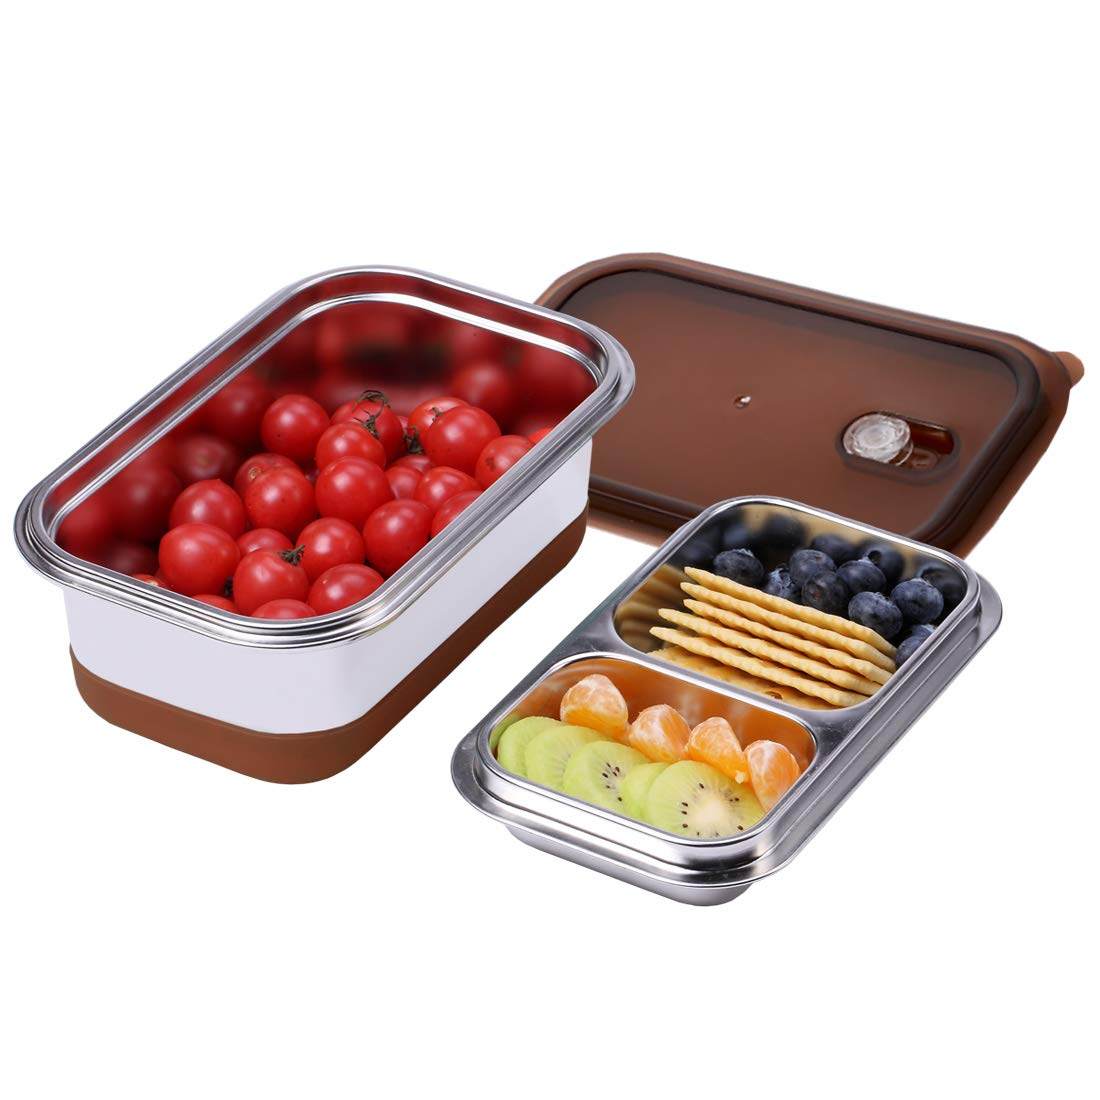 BonNoces Bento Box, SUS 304 18/8 Fine Stainless Steel 2 Layer Lunch Box, 1100 ML/34 OZ Food Storage Container for Adults and Teenagers, Perfect for School, Outing and Picnic (Brown)